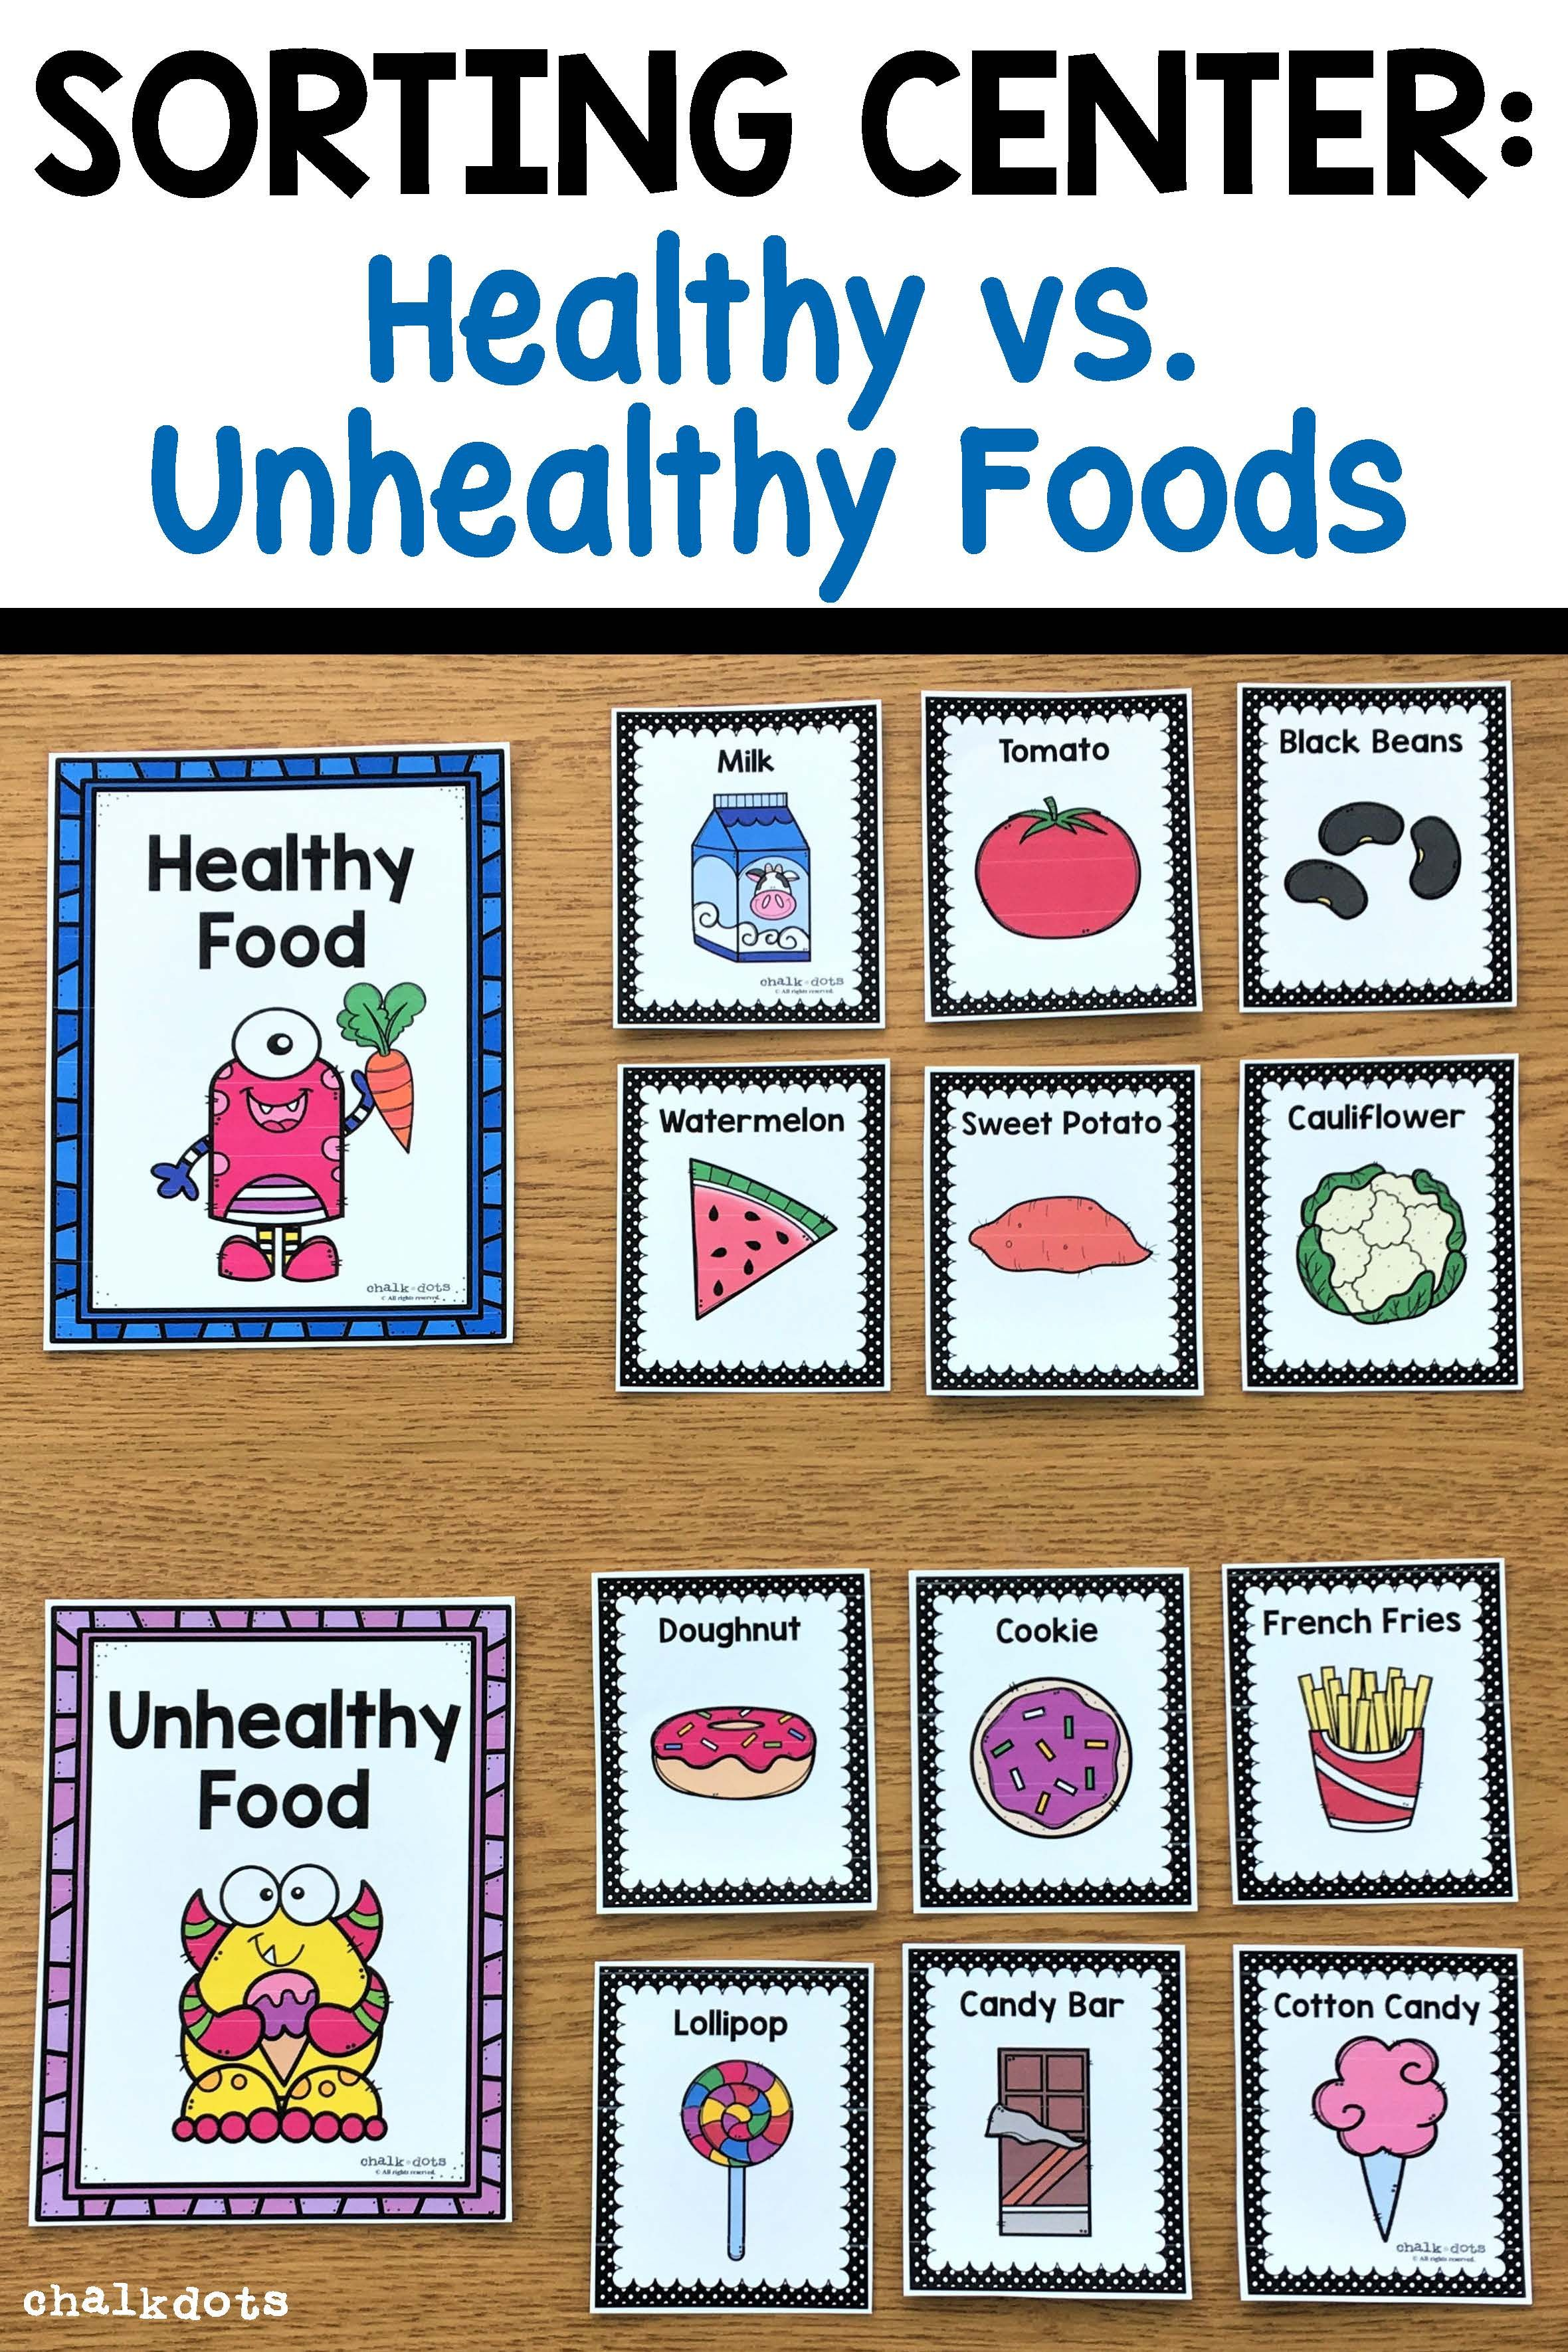 Food Group Sorting And Healthy Vs Unhealthy Food Sorting